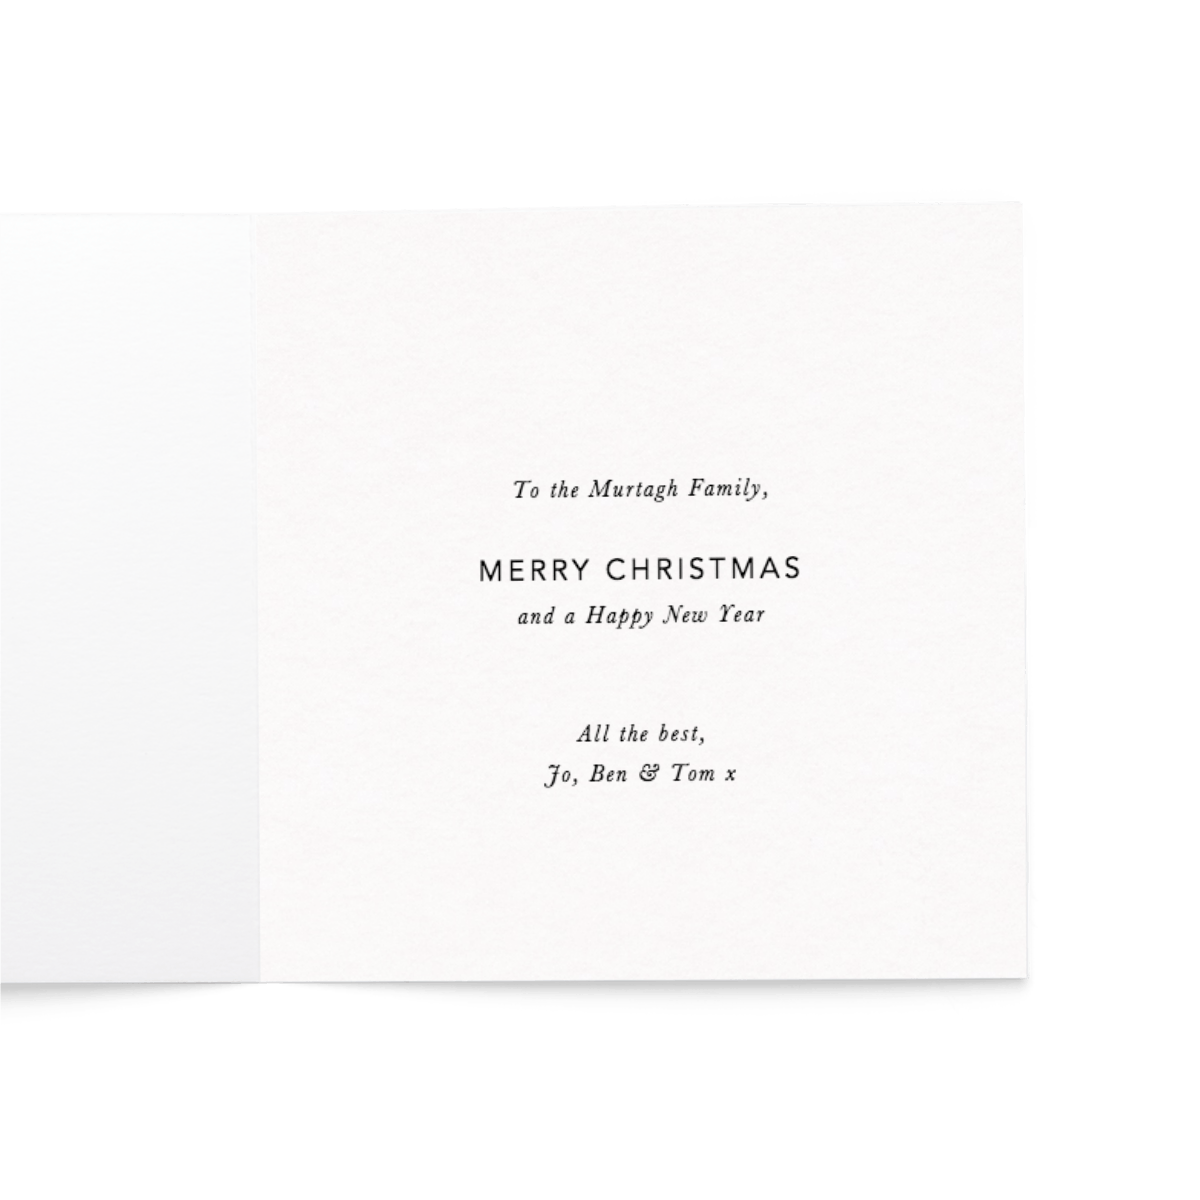 Https%3a%2f%2fwww.papier.com%2fproduct image%2f27705%2f21%2fmerry christmas white photo 6727 interieur 1506076743.png?ixlib=rb 1.1